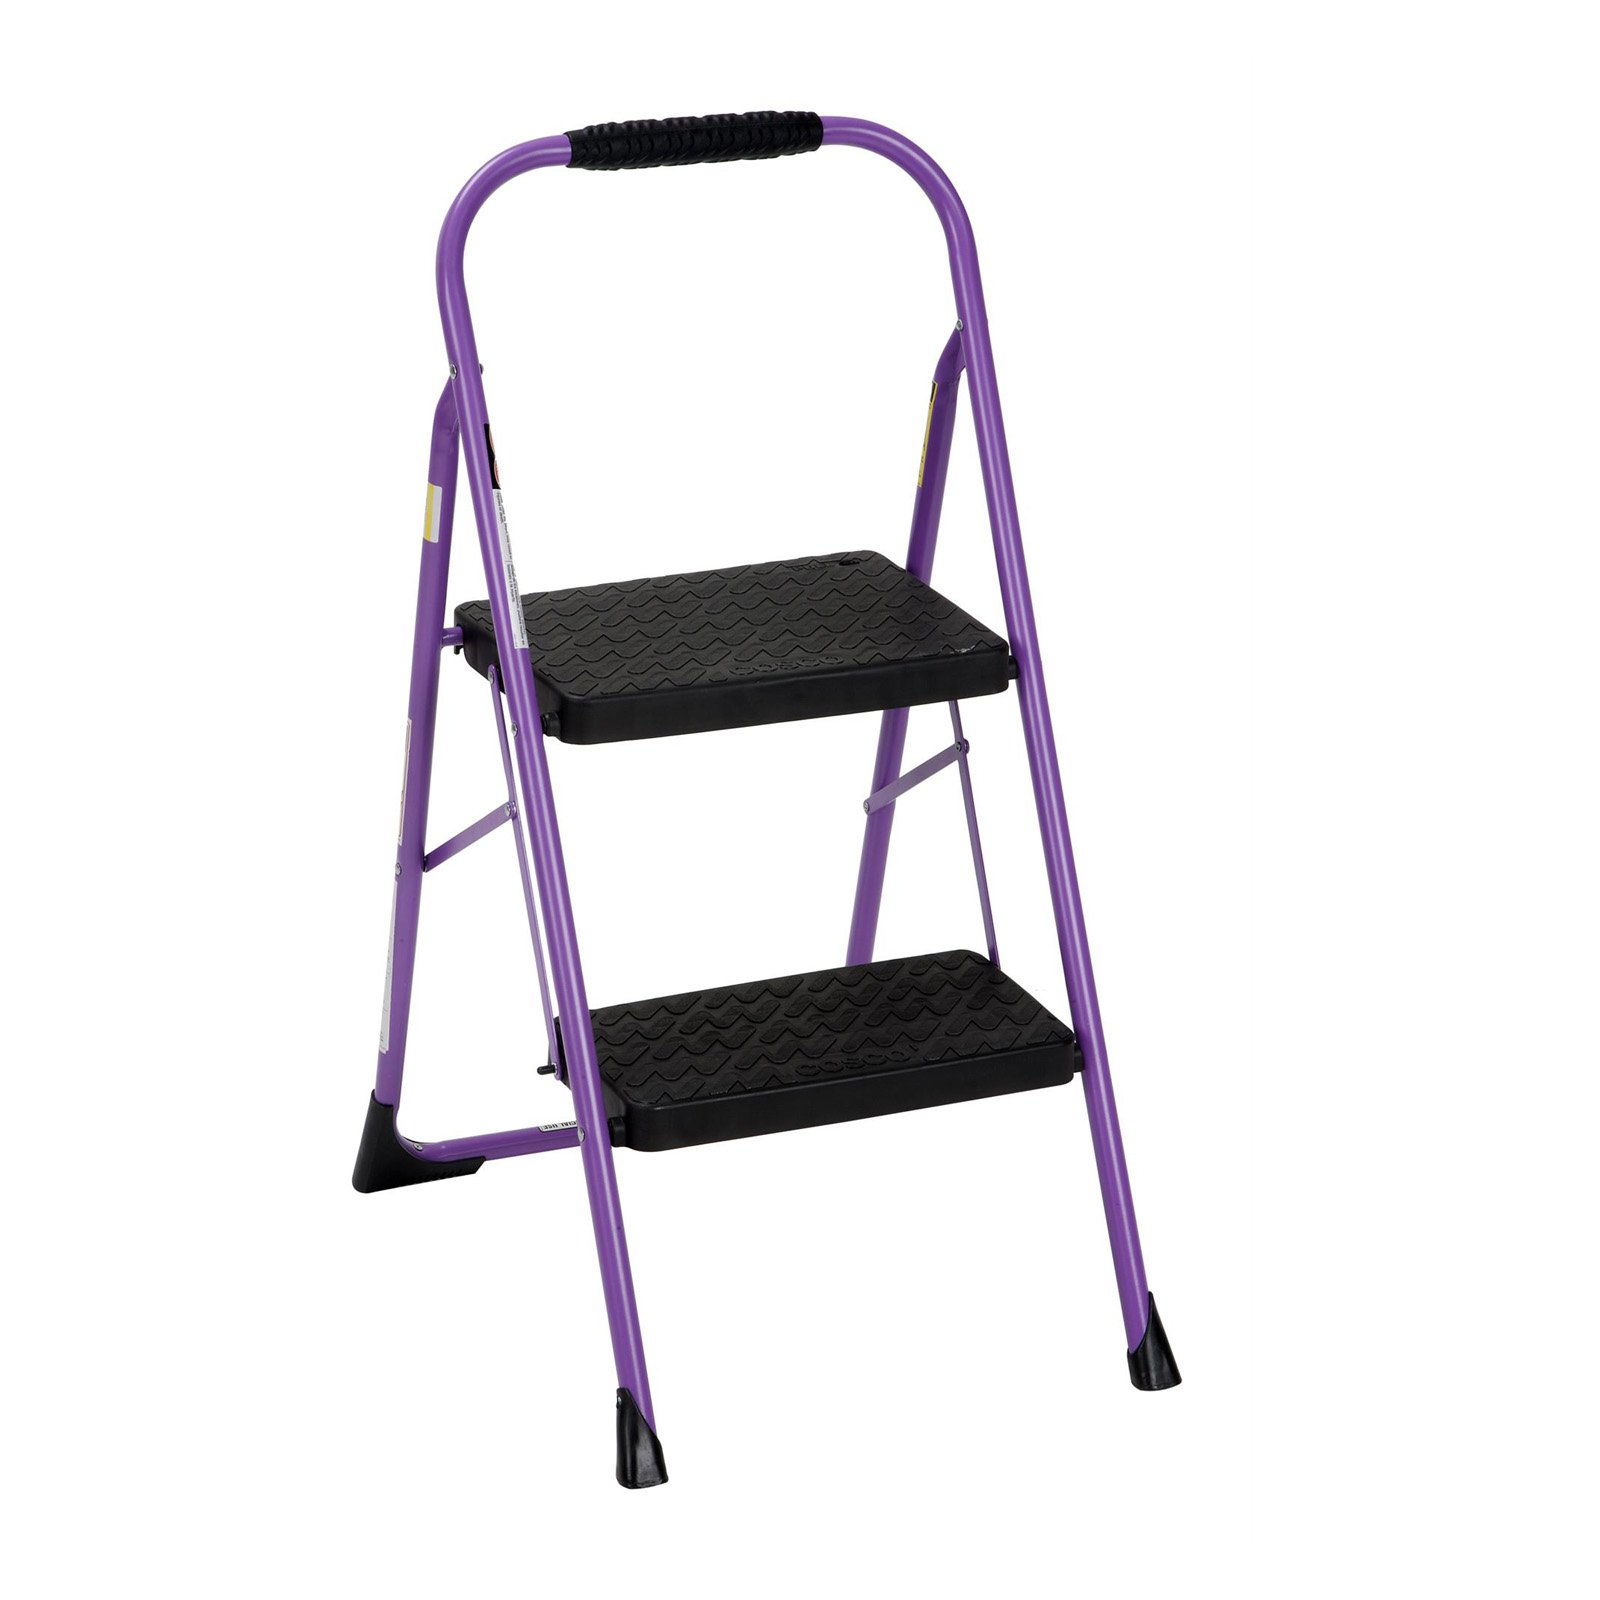 Cosco Two Step Big Step Folding Step Stool with Rubber Hand Grip by Cosco